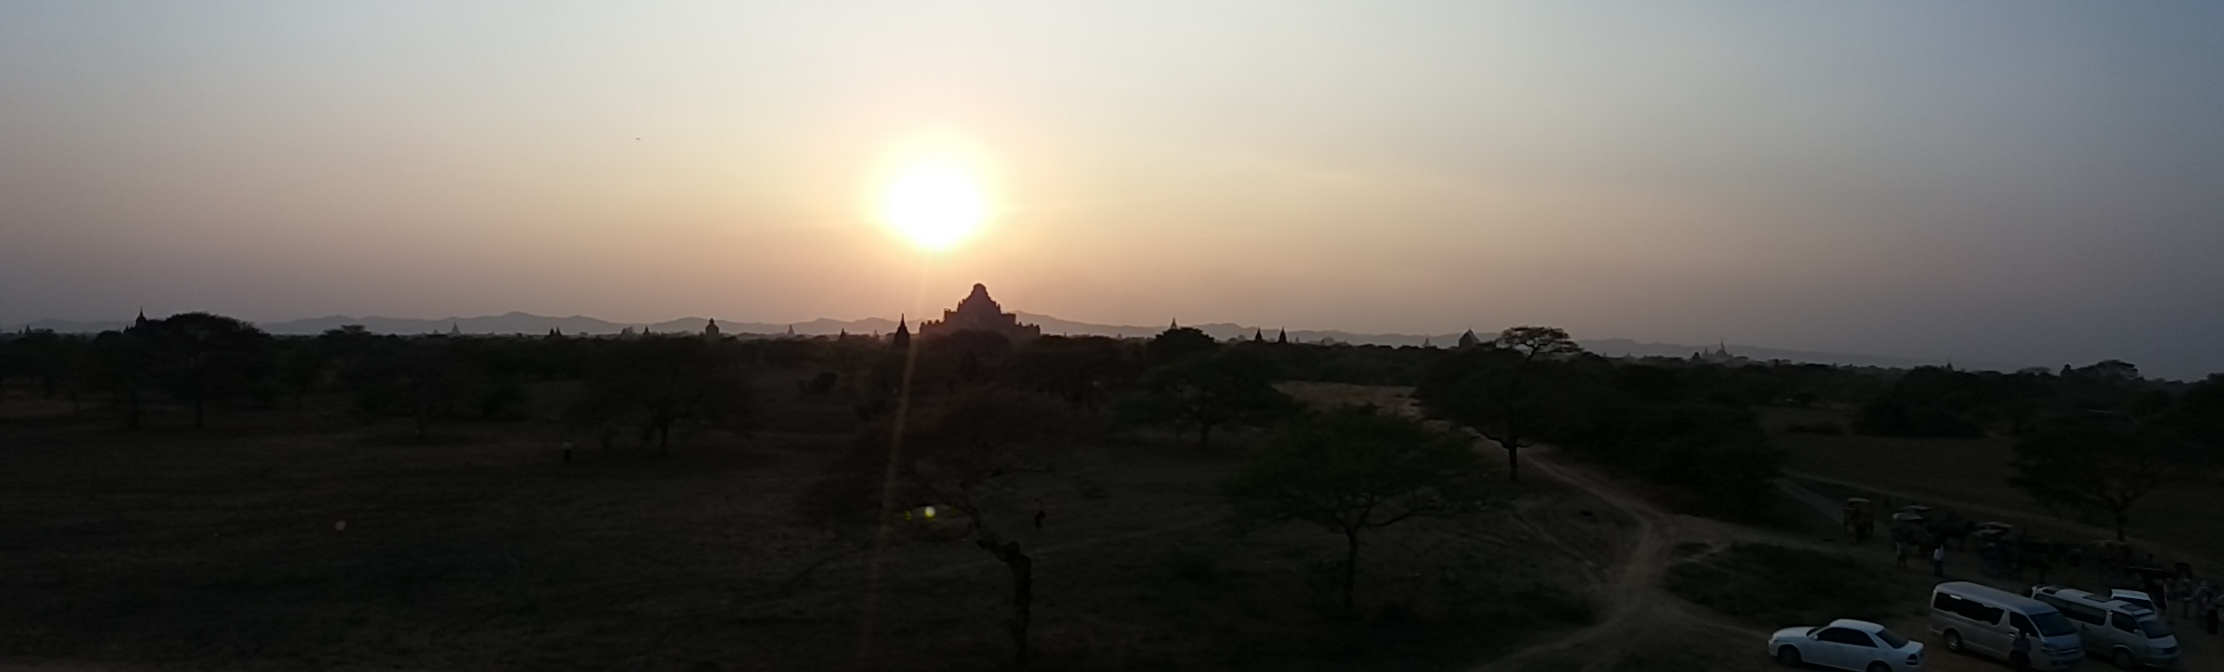 If you are visiting Bagan temples in 2018, be aware that you can't climb them anymore. There are informative signs about it everywhere.